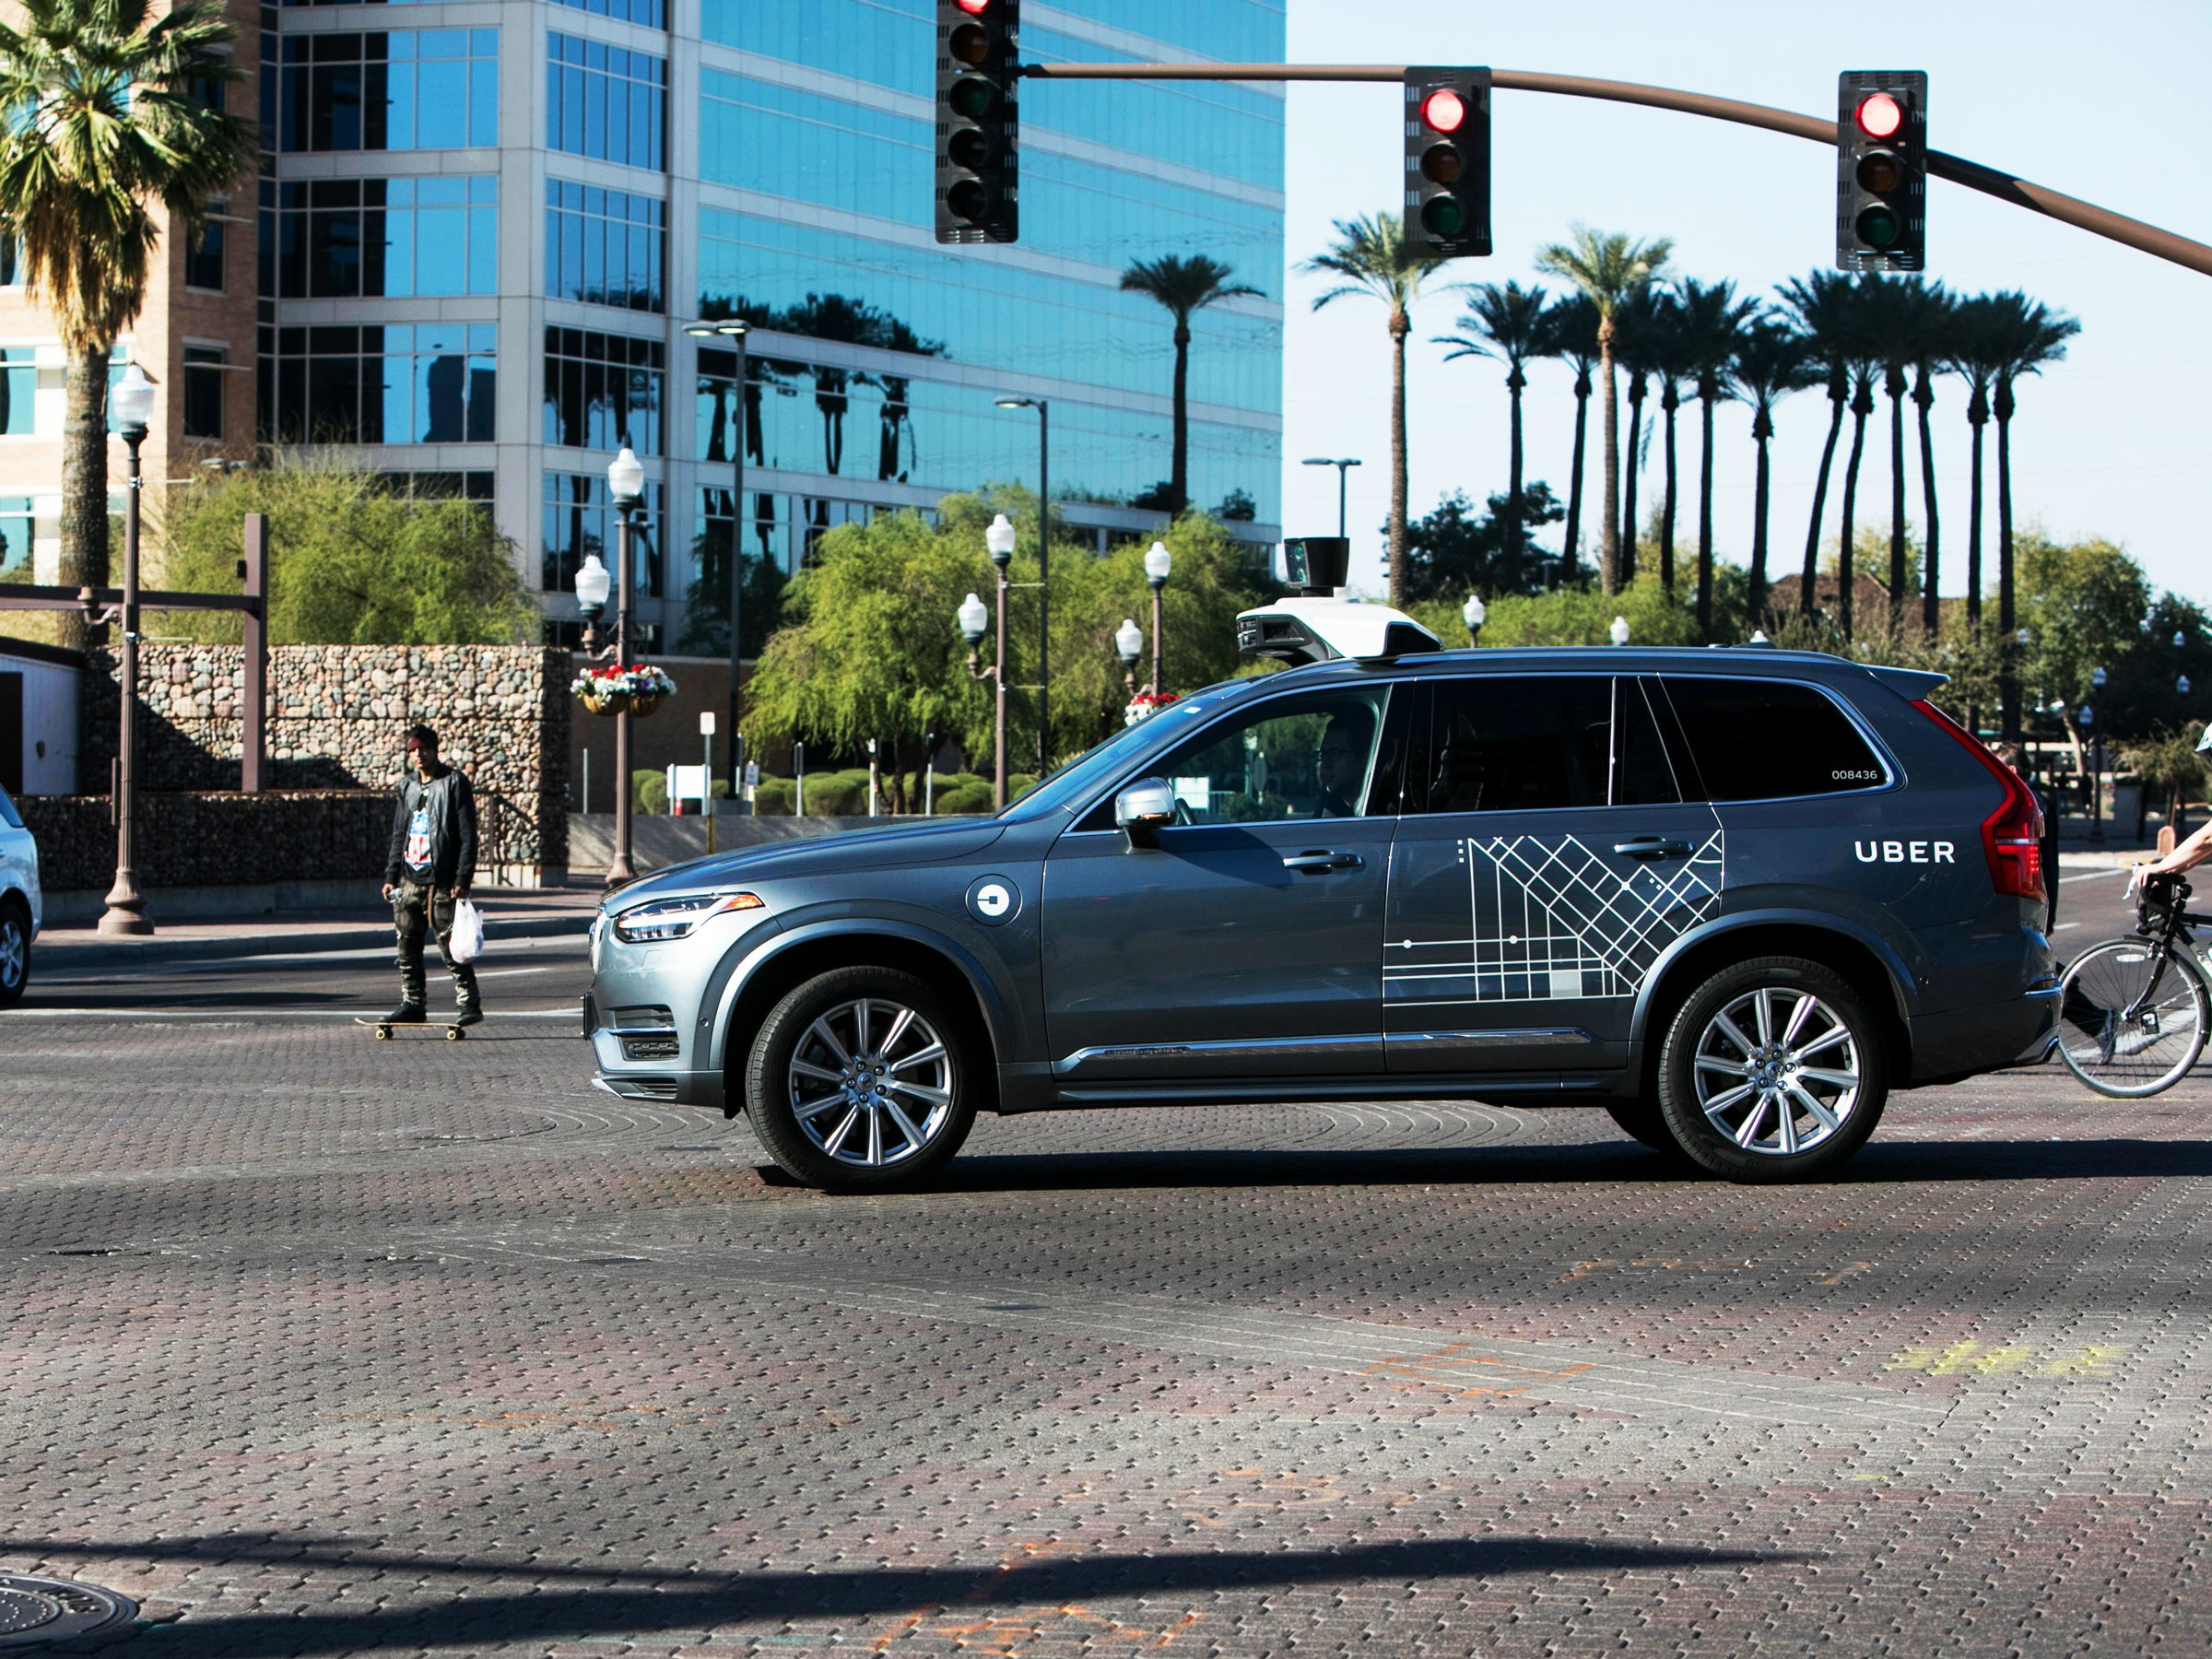 uber s self driving car just killed somebody in arizona now what